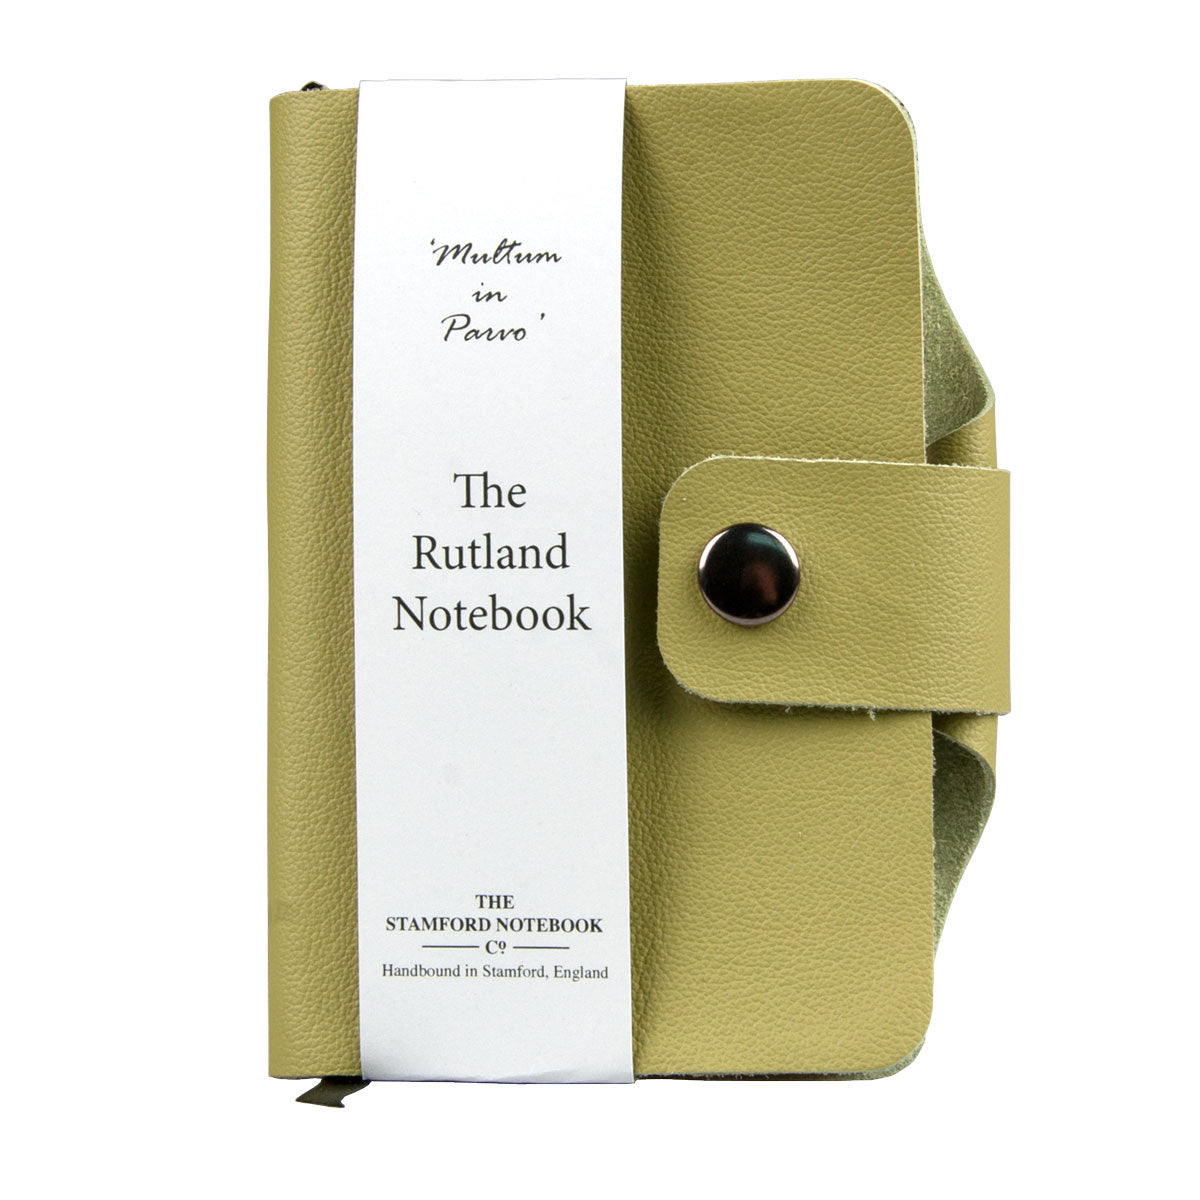 Pistachio handbound Luxury leather rutland notebook